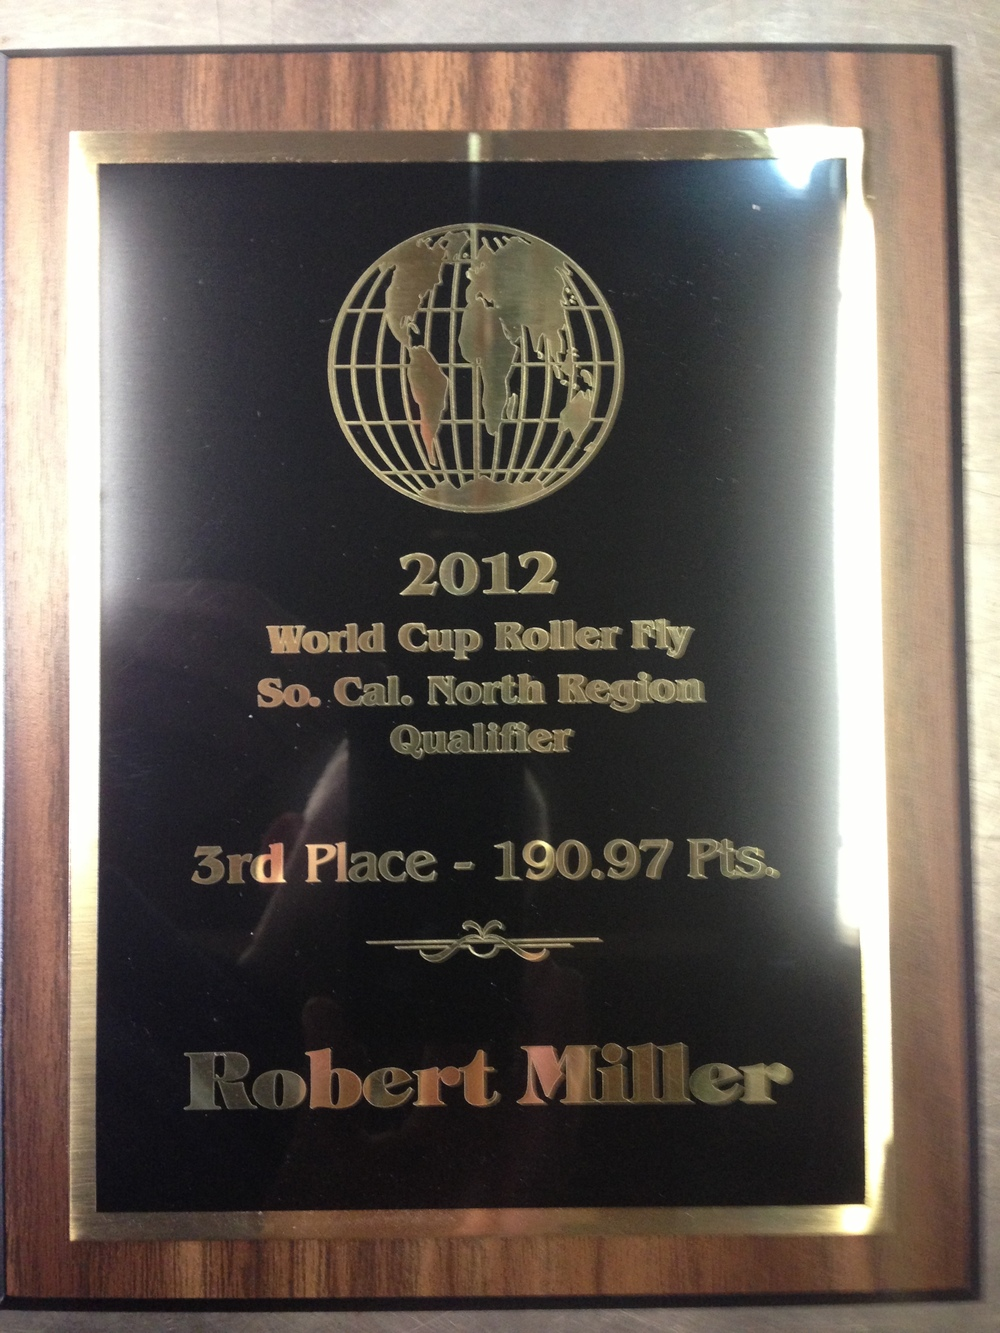 Placed 3rd in the LA area for the 2012 World Cup.